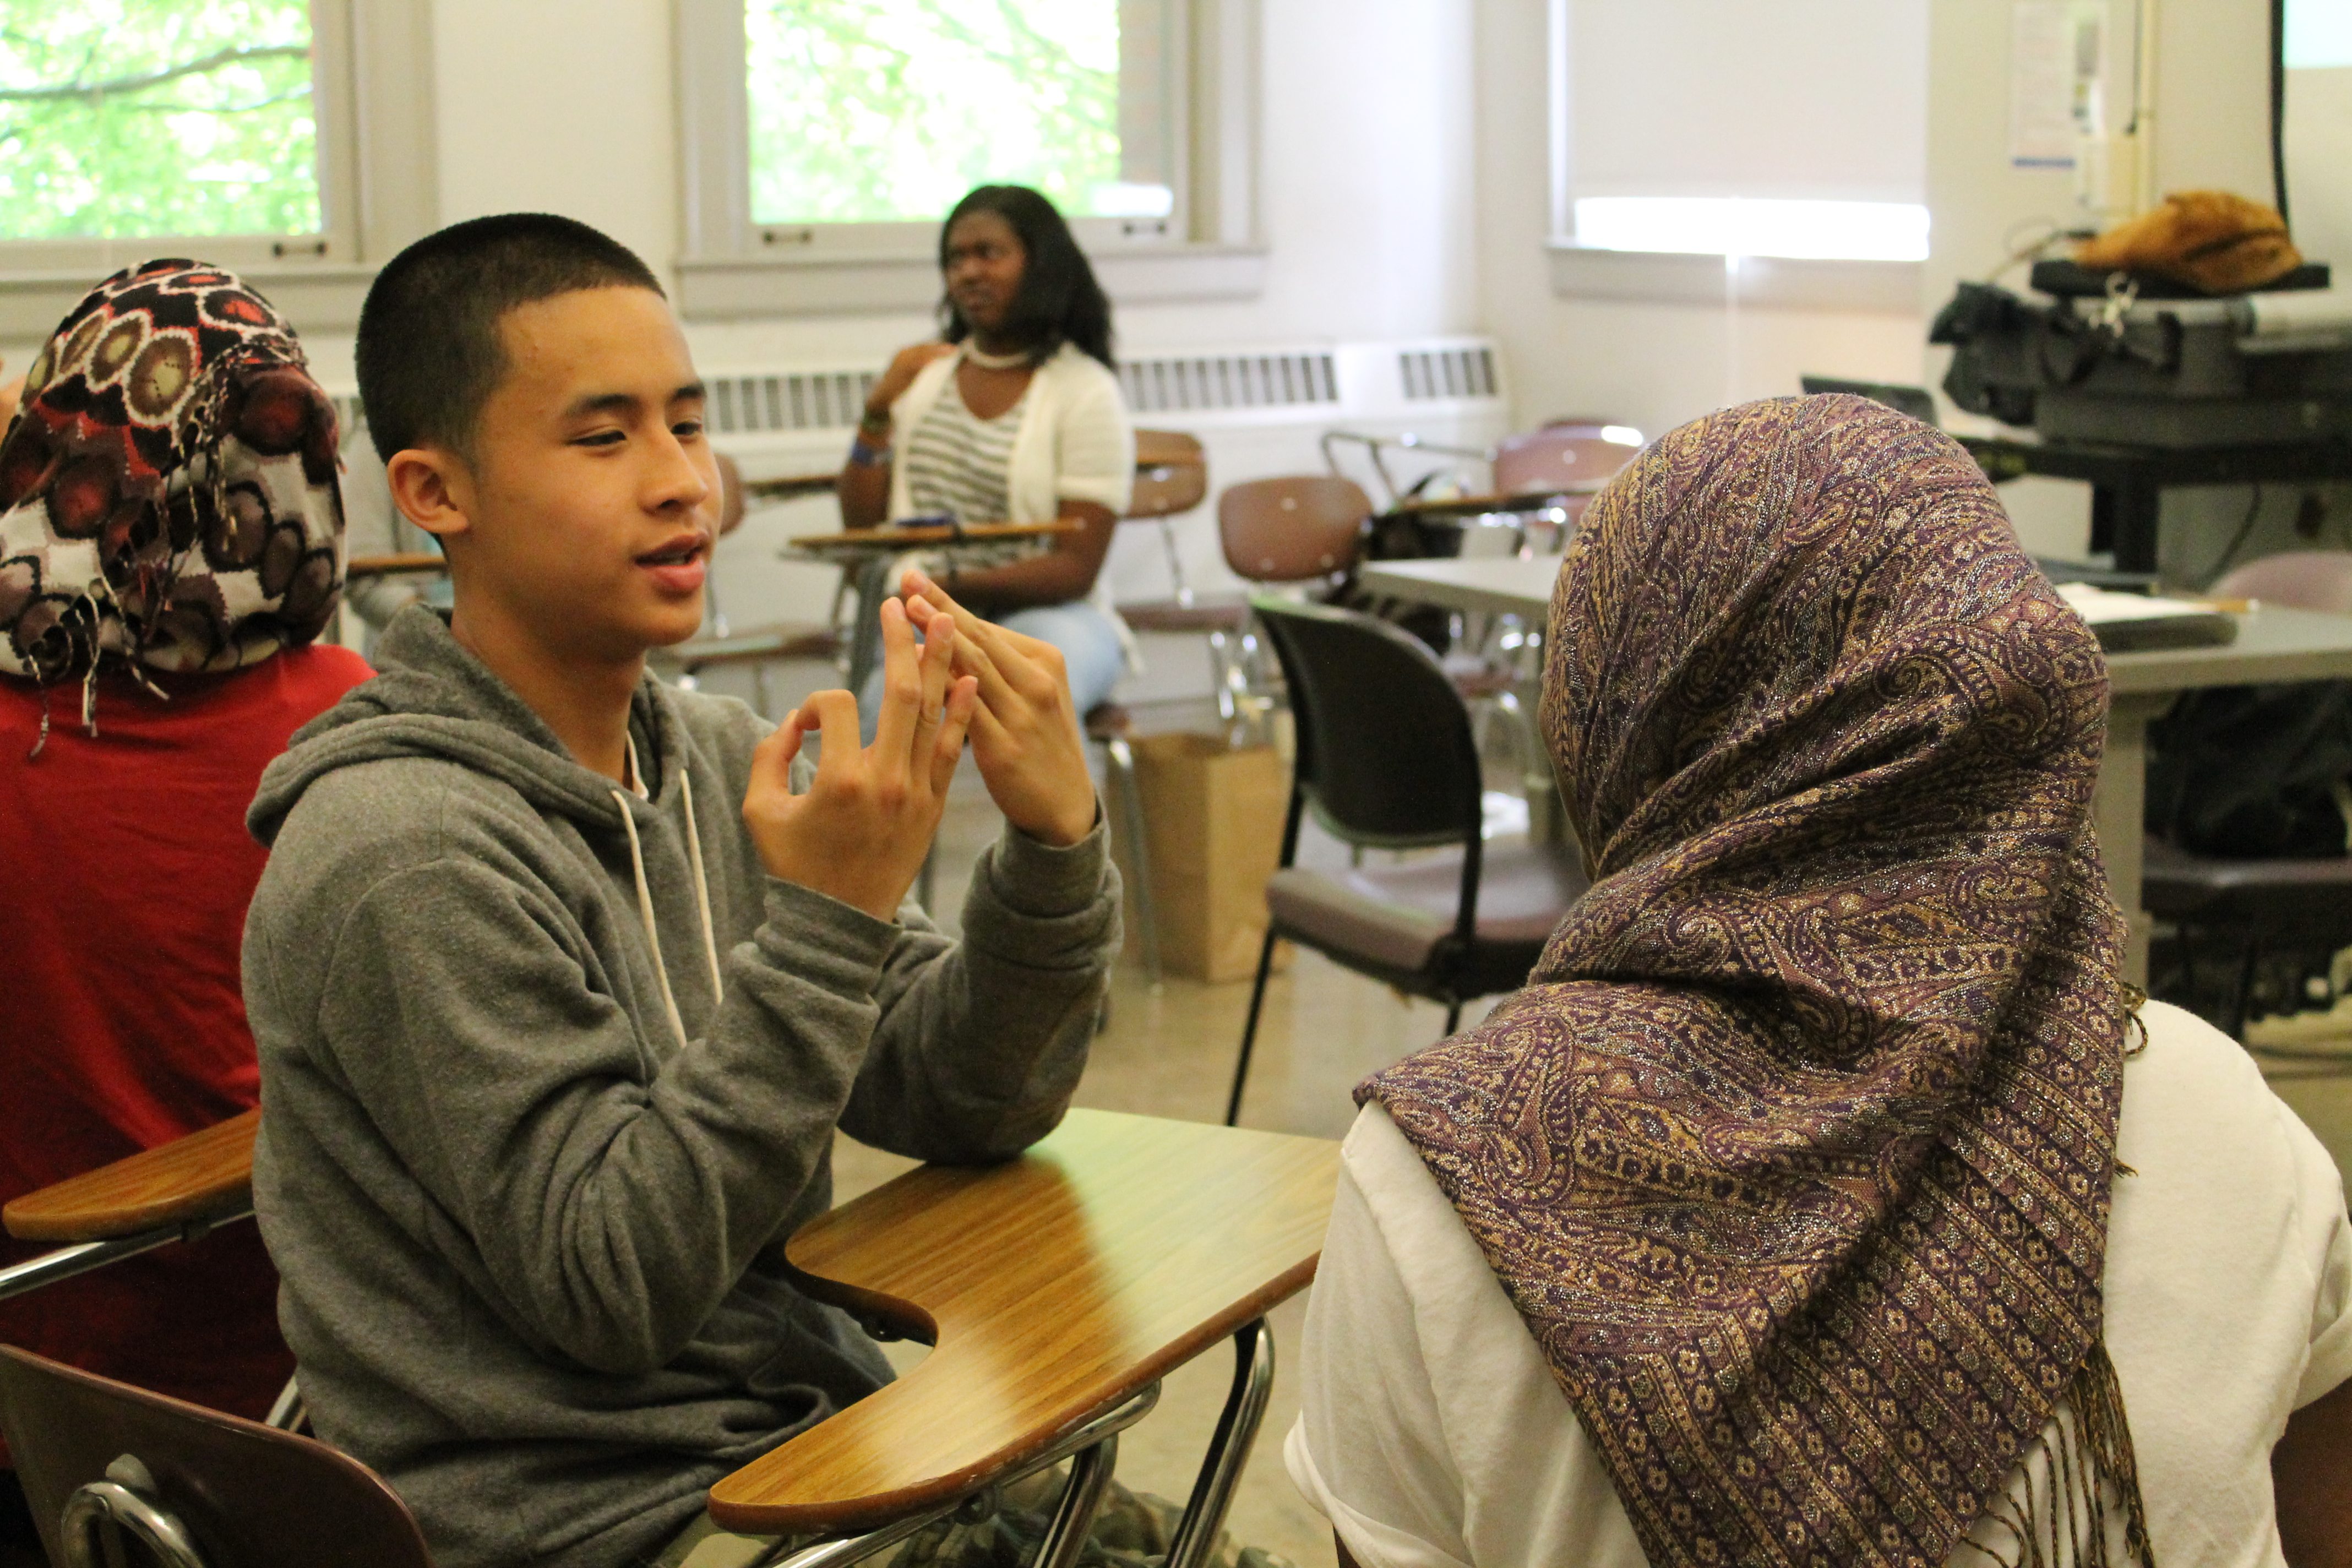 High school students practice American Sign Language, one of the elective classes offered by the Upward Bound summer program for students from low-income families.